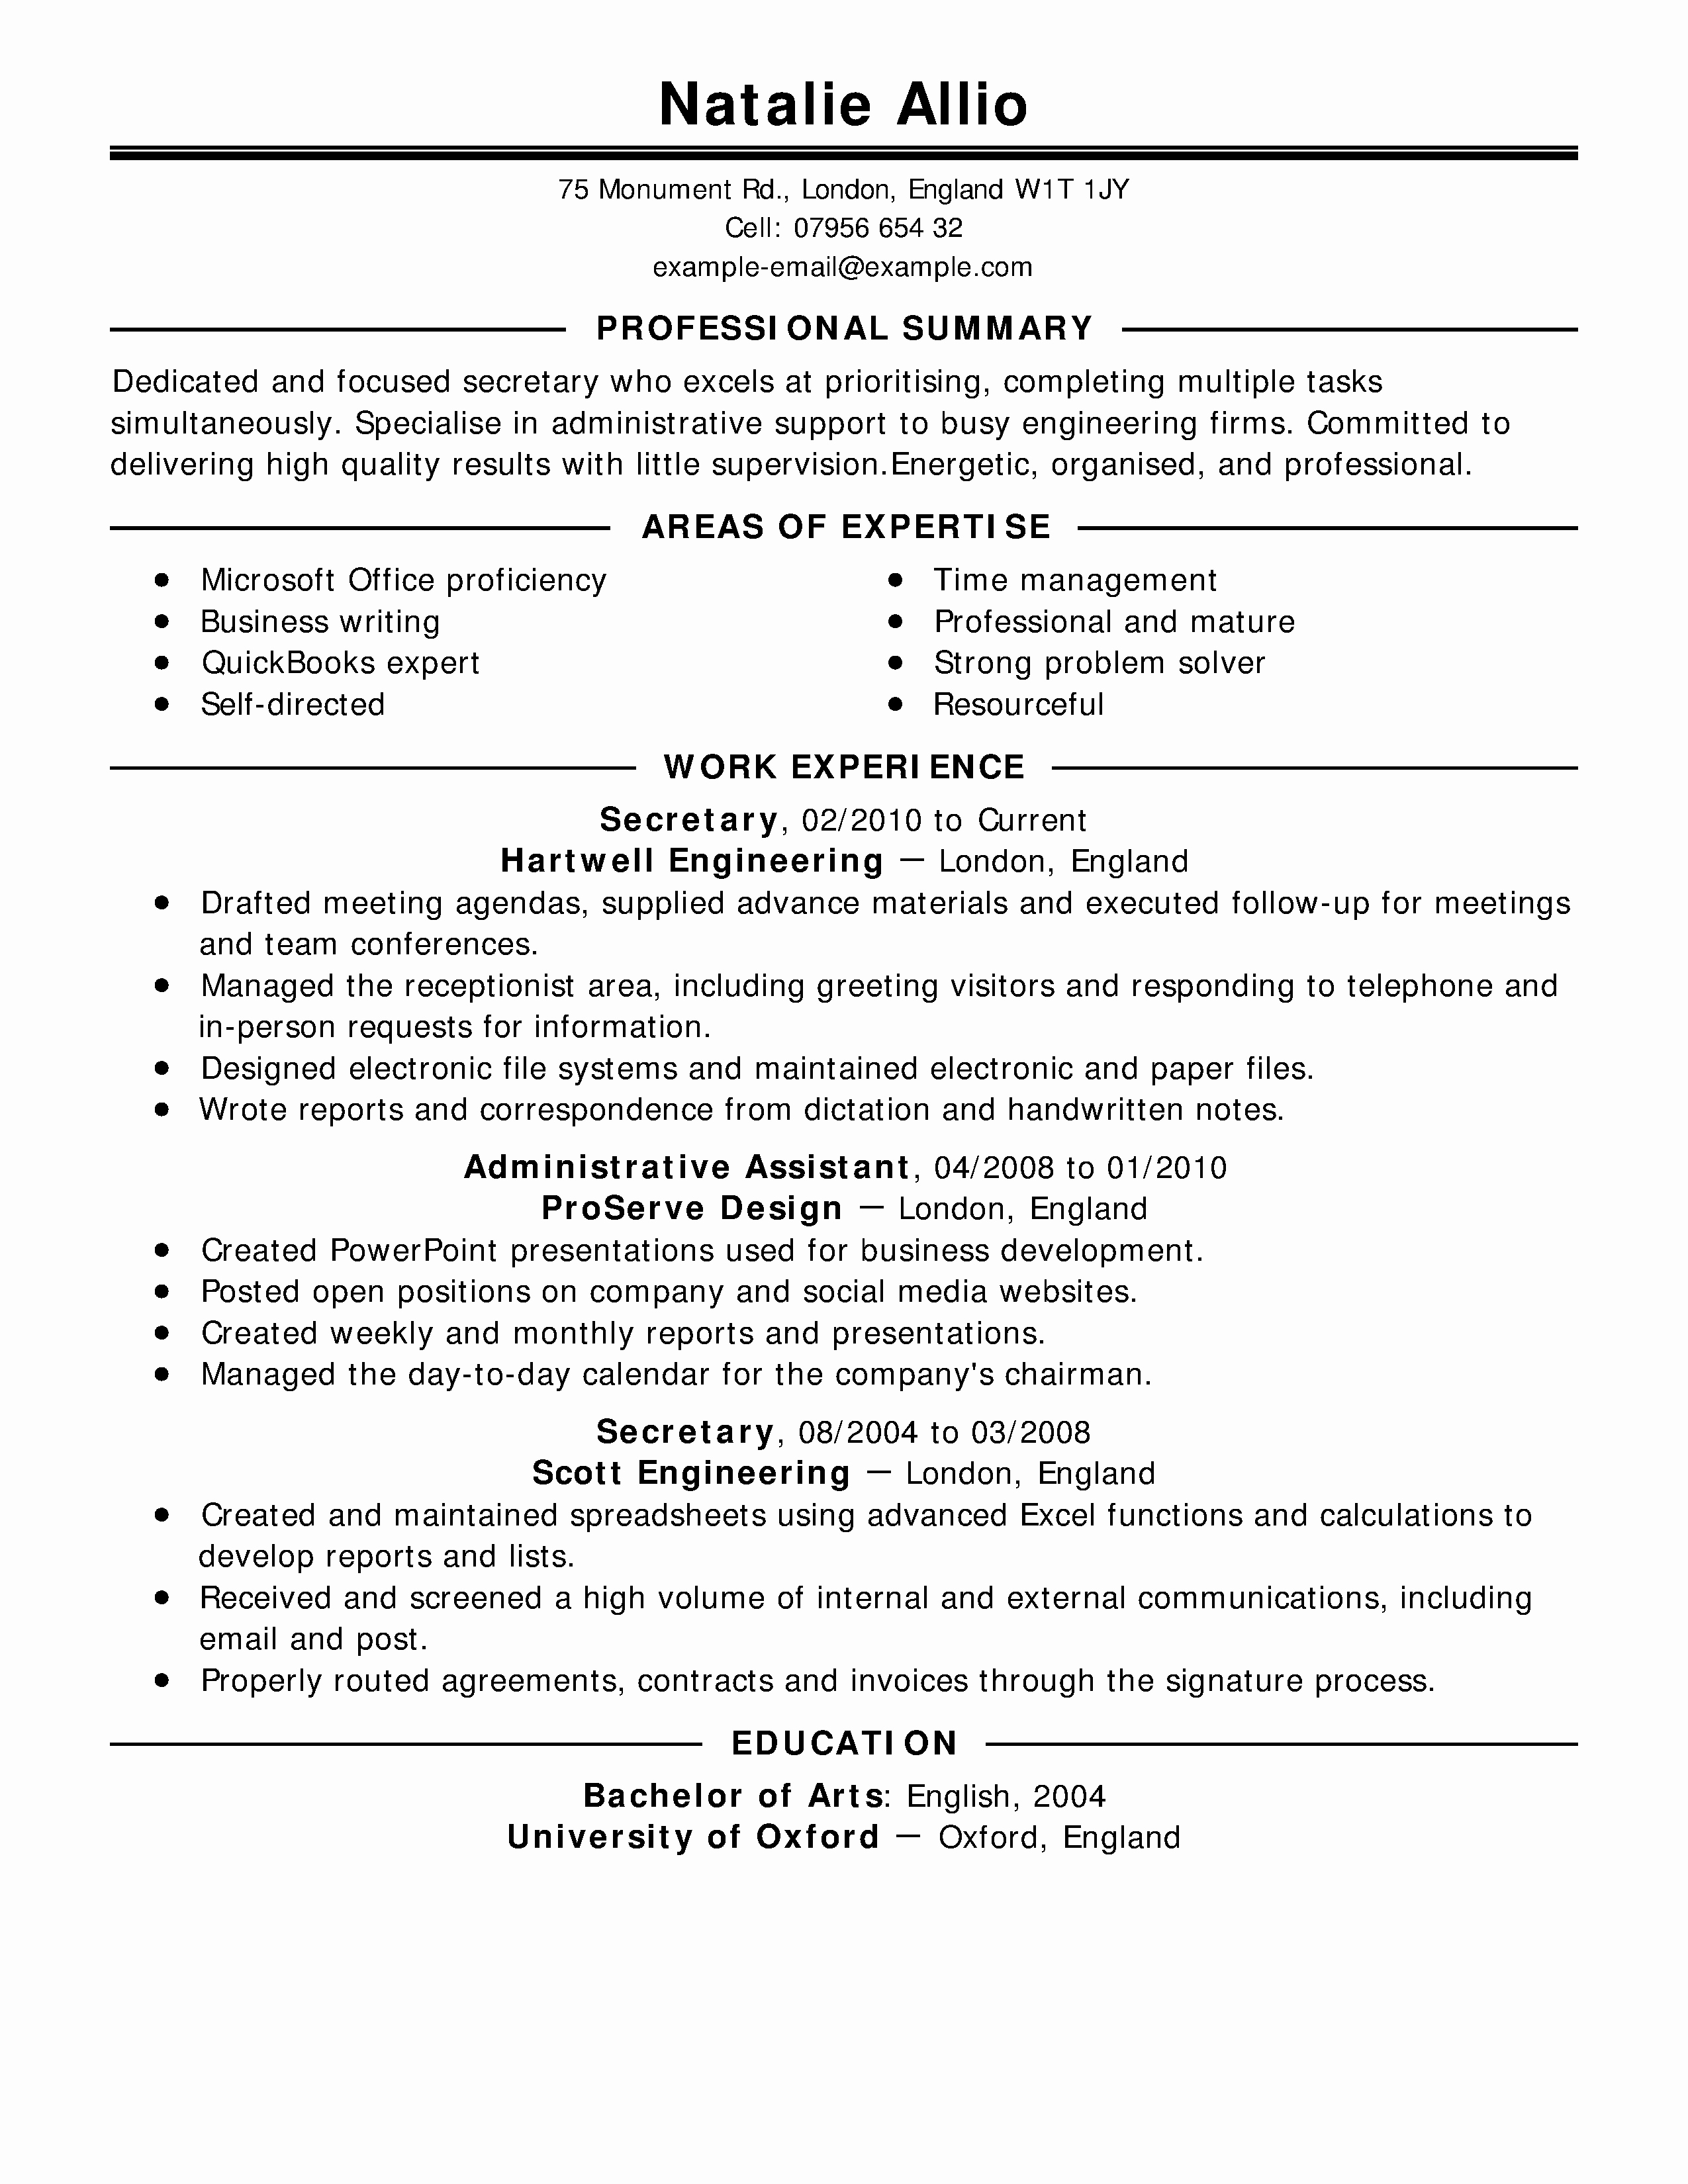 7 Outstanding Cover Letters & Resumes for Internships